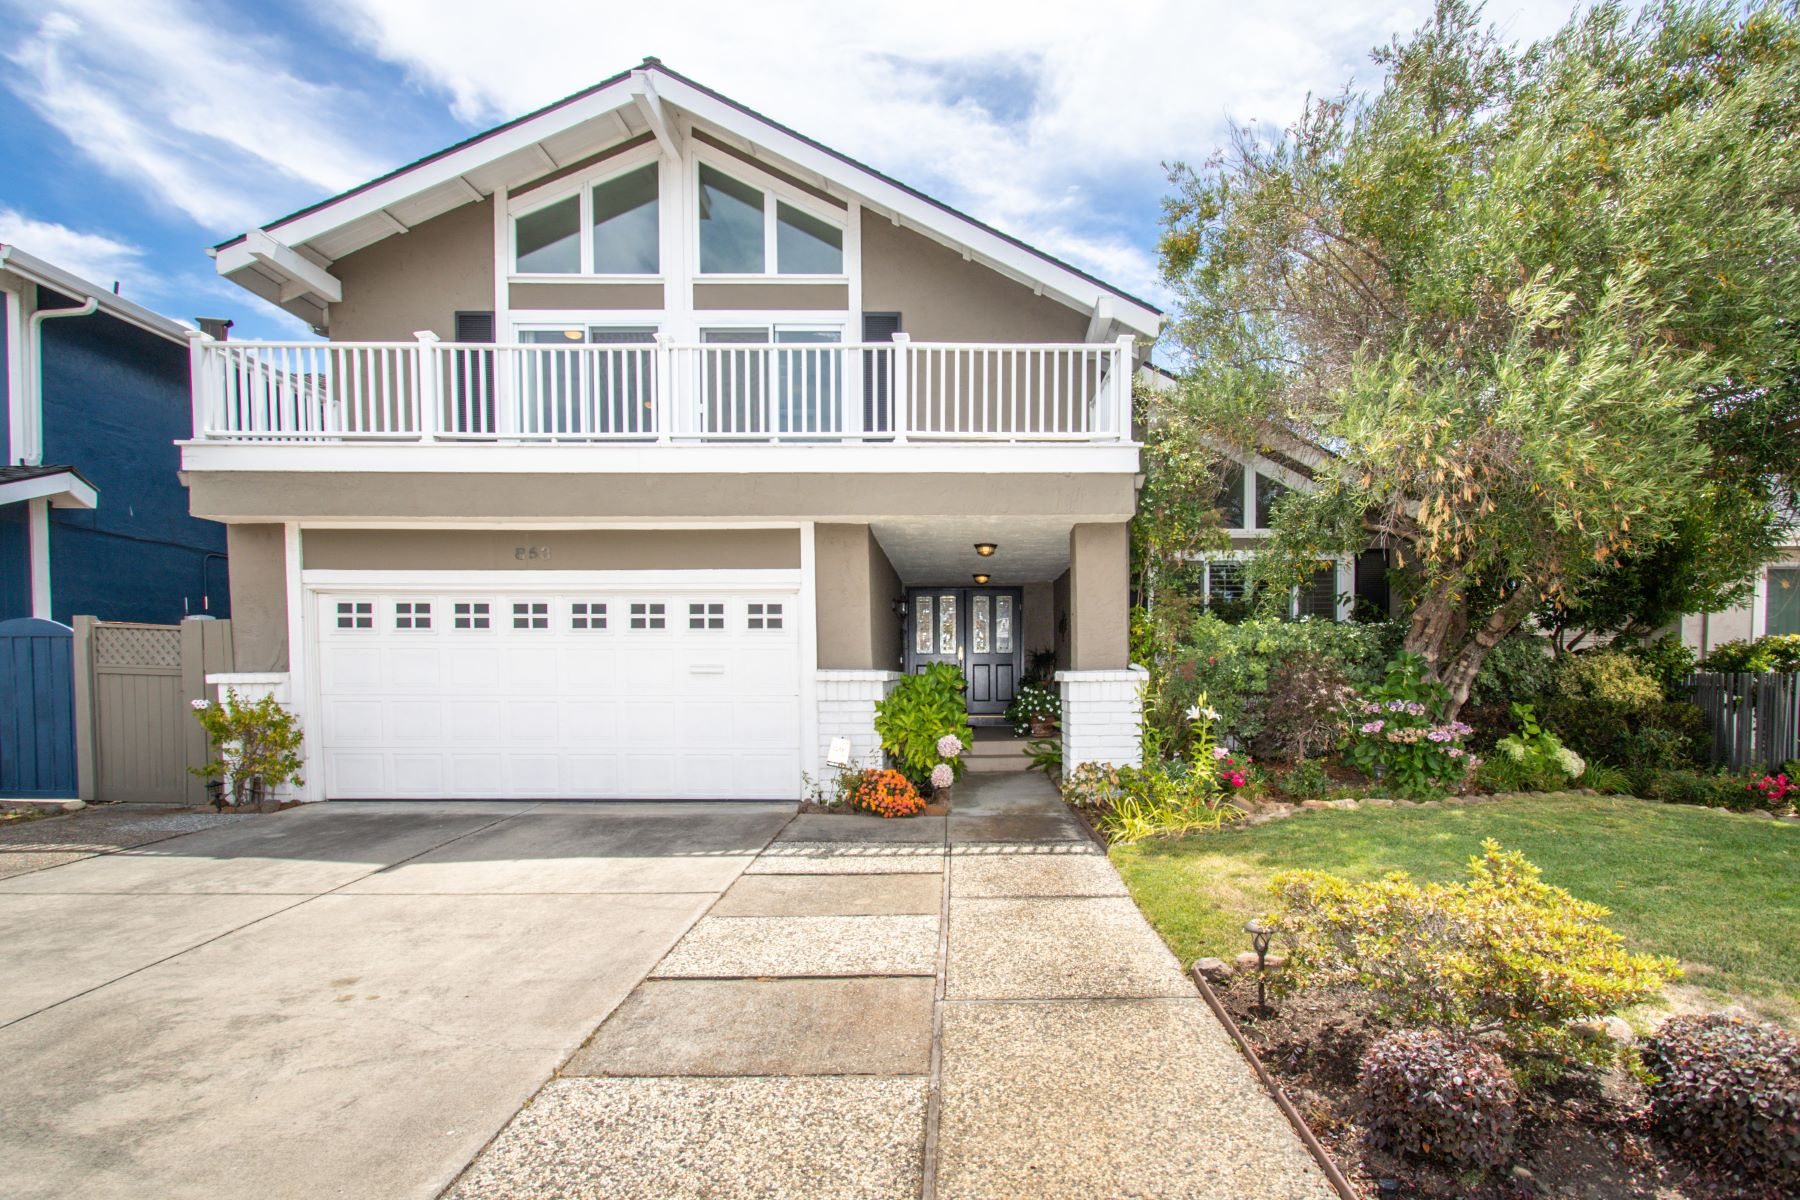 Single Family Homes for Active at Spacious Home in Desirable Foster City Neighborhood 853 Arcturus Circle Foster City, California 94404 United States